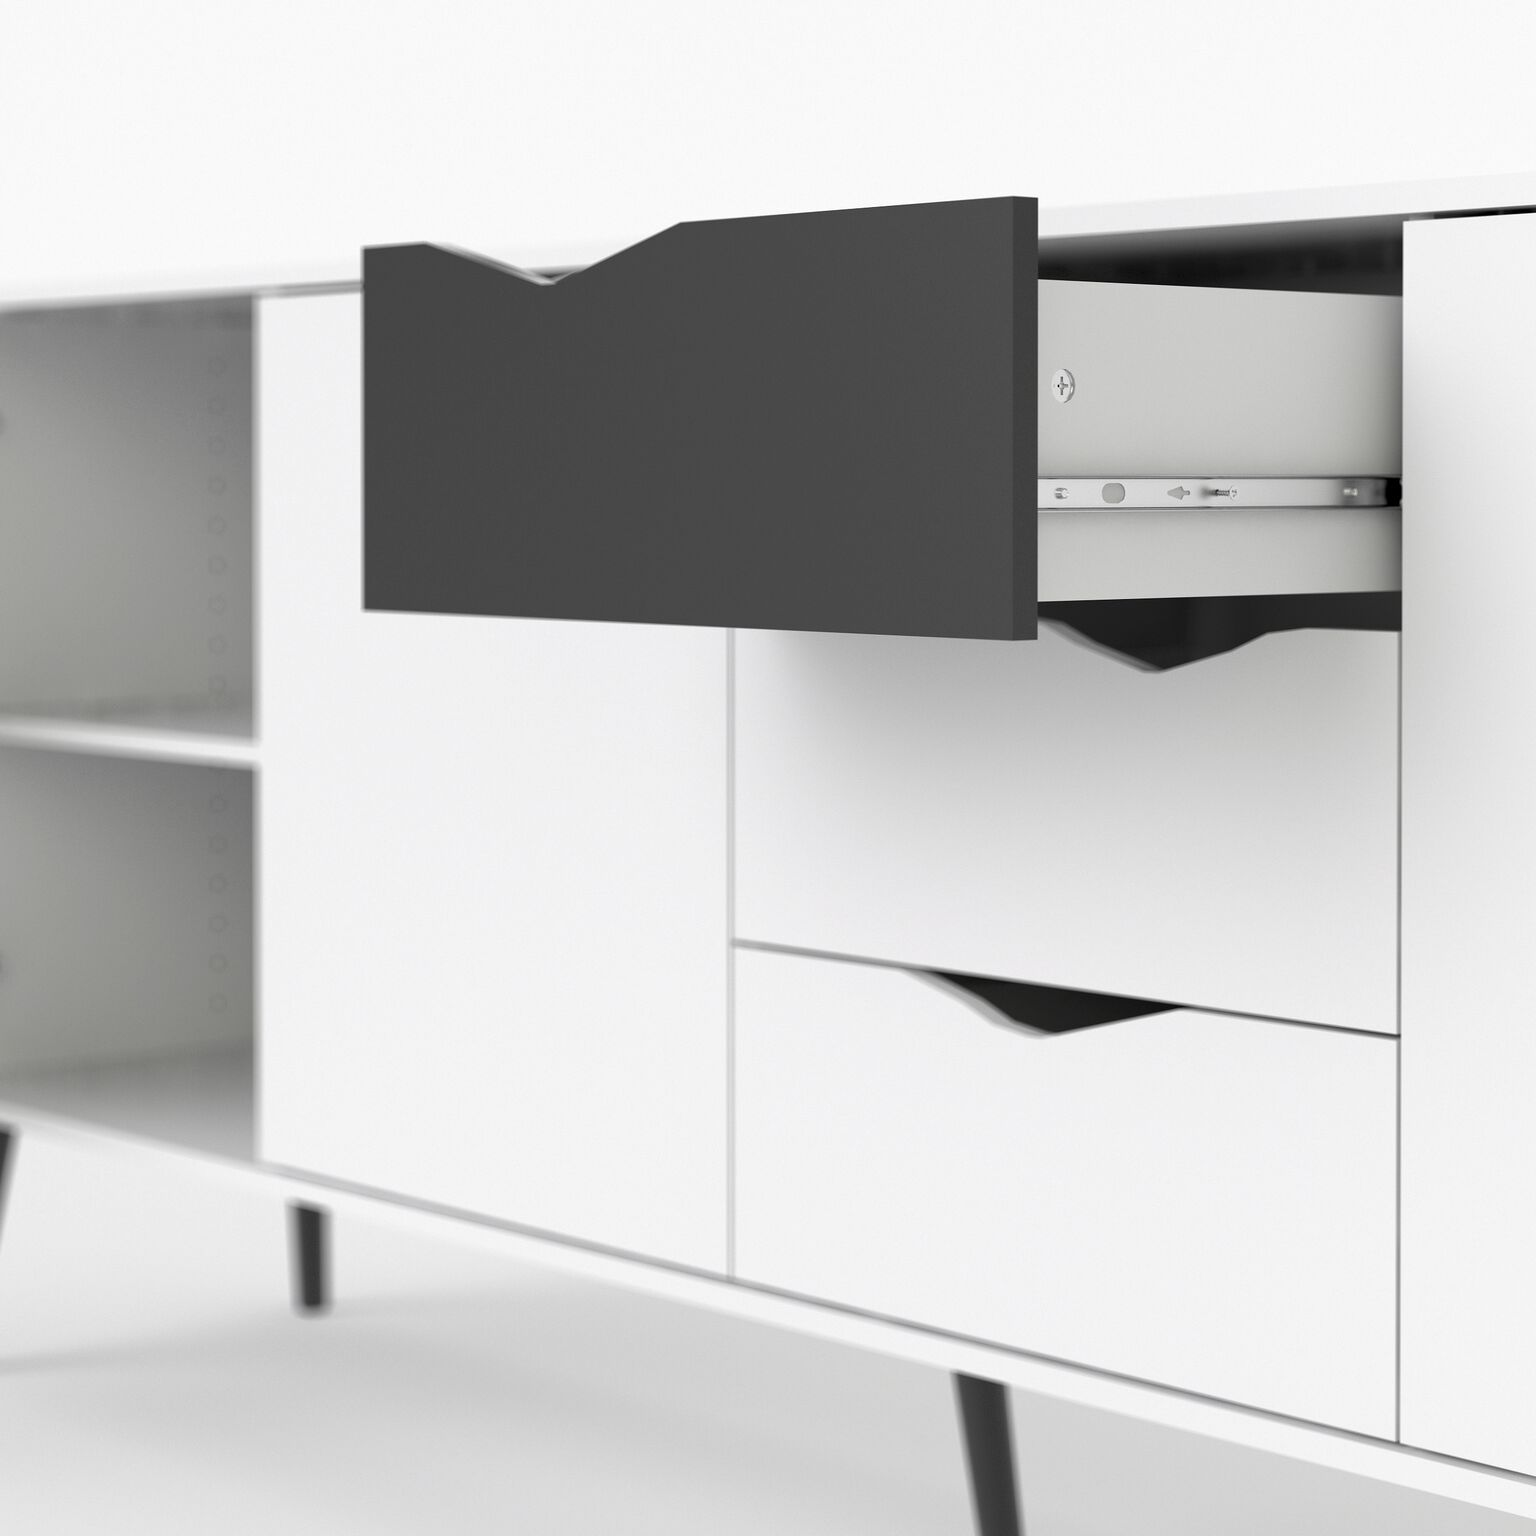 sideboard napoli kommode anrichte schrank highboard schwarz wei kaufen bei dtg dynamic trade gmbh. Black Bedroom Furniture Sets. Home Design Ideas